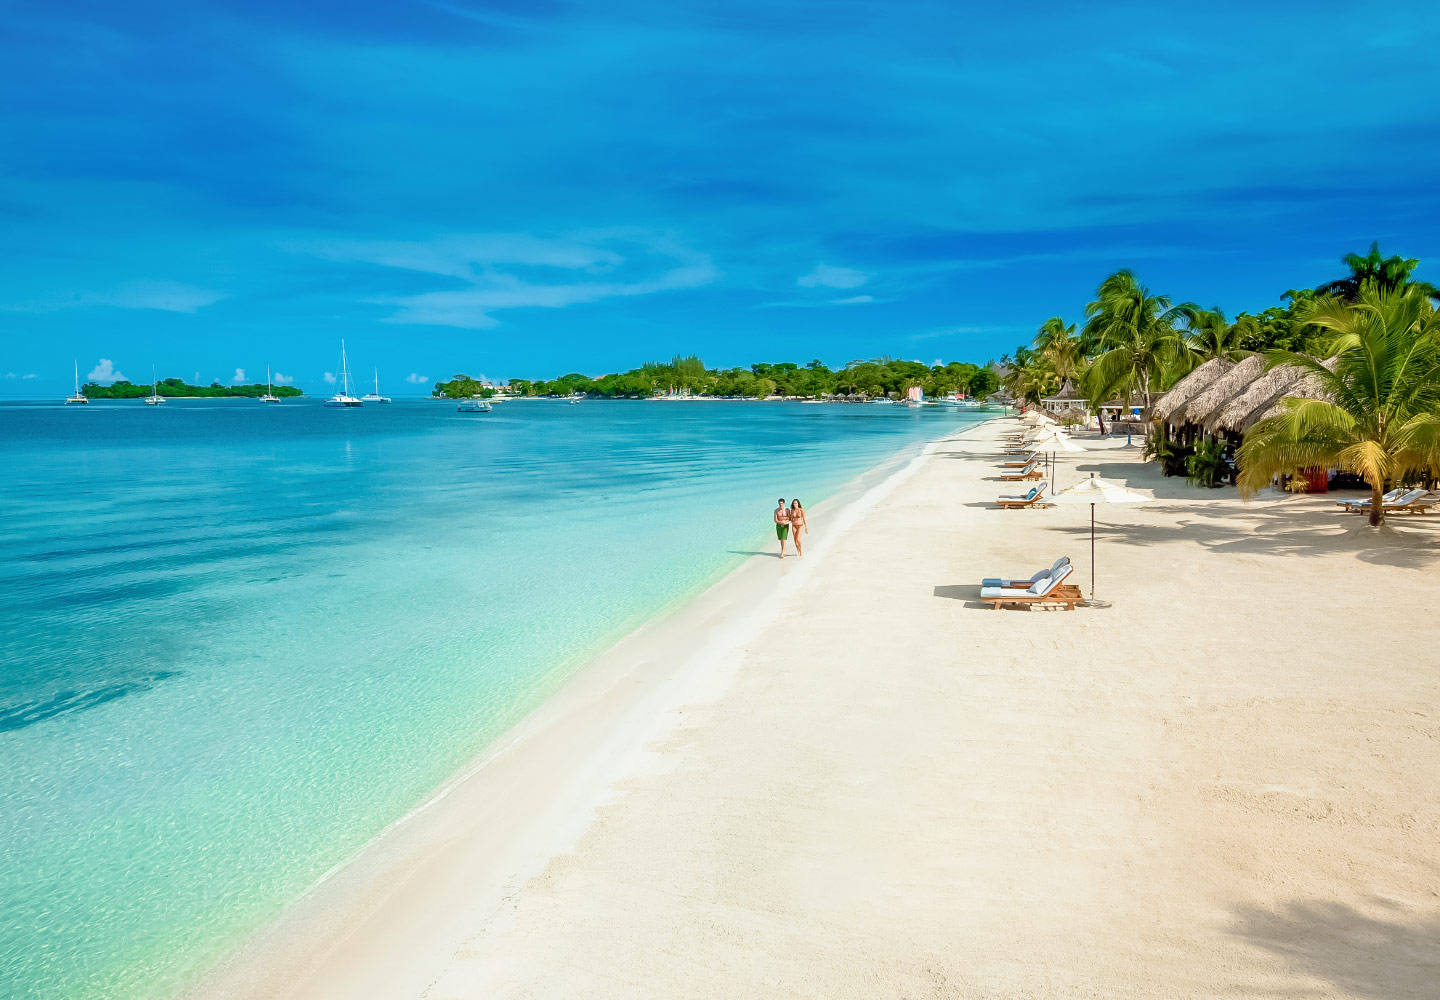 All Inclusive Negril Jamaica Beach Amp Vacation Resort